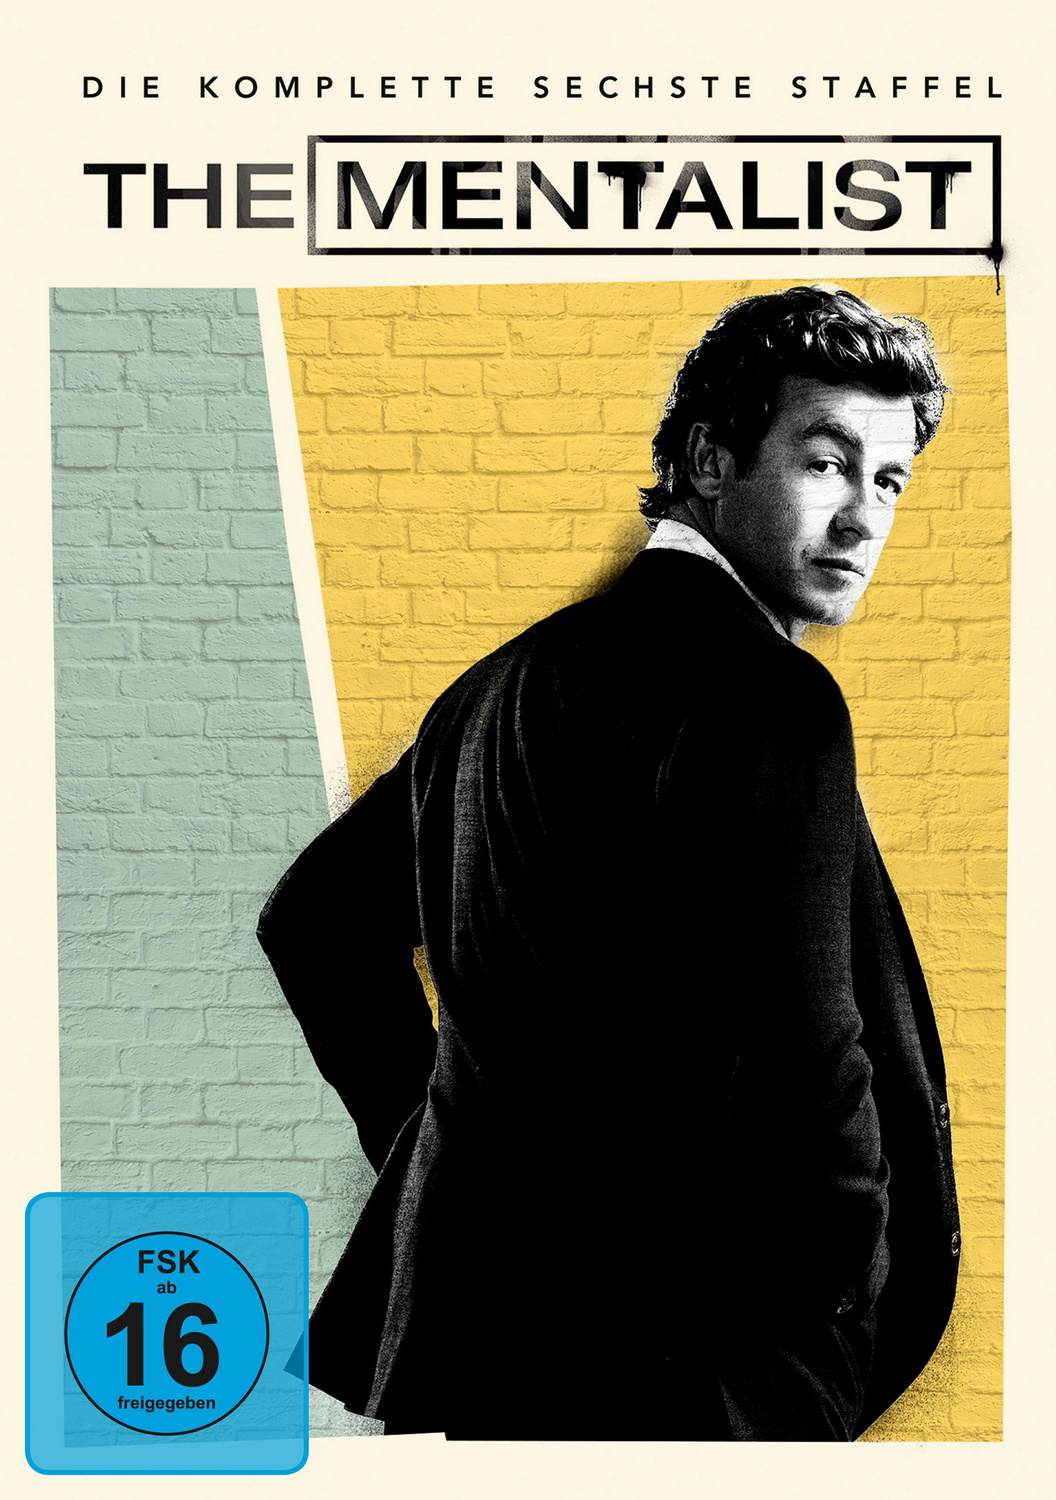 The Mentalist - Die komplette sechste Staffel [5 DVDs]